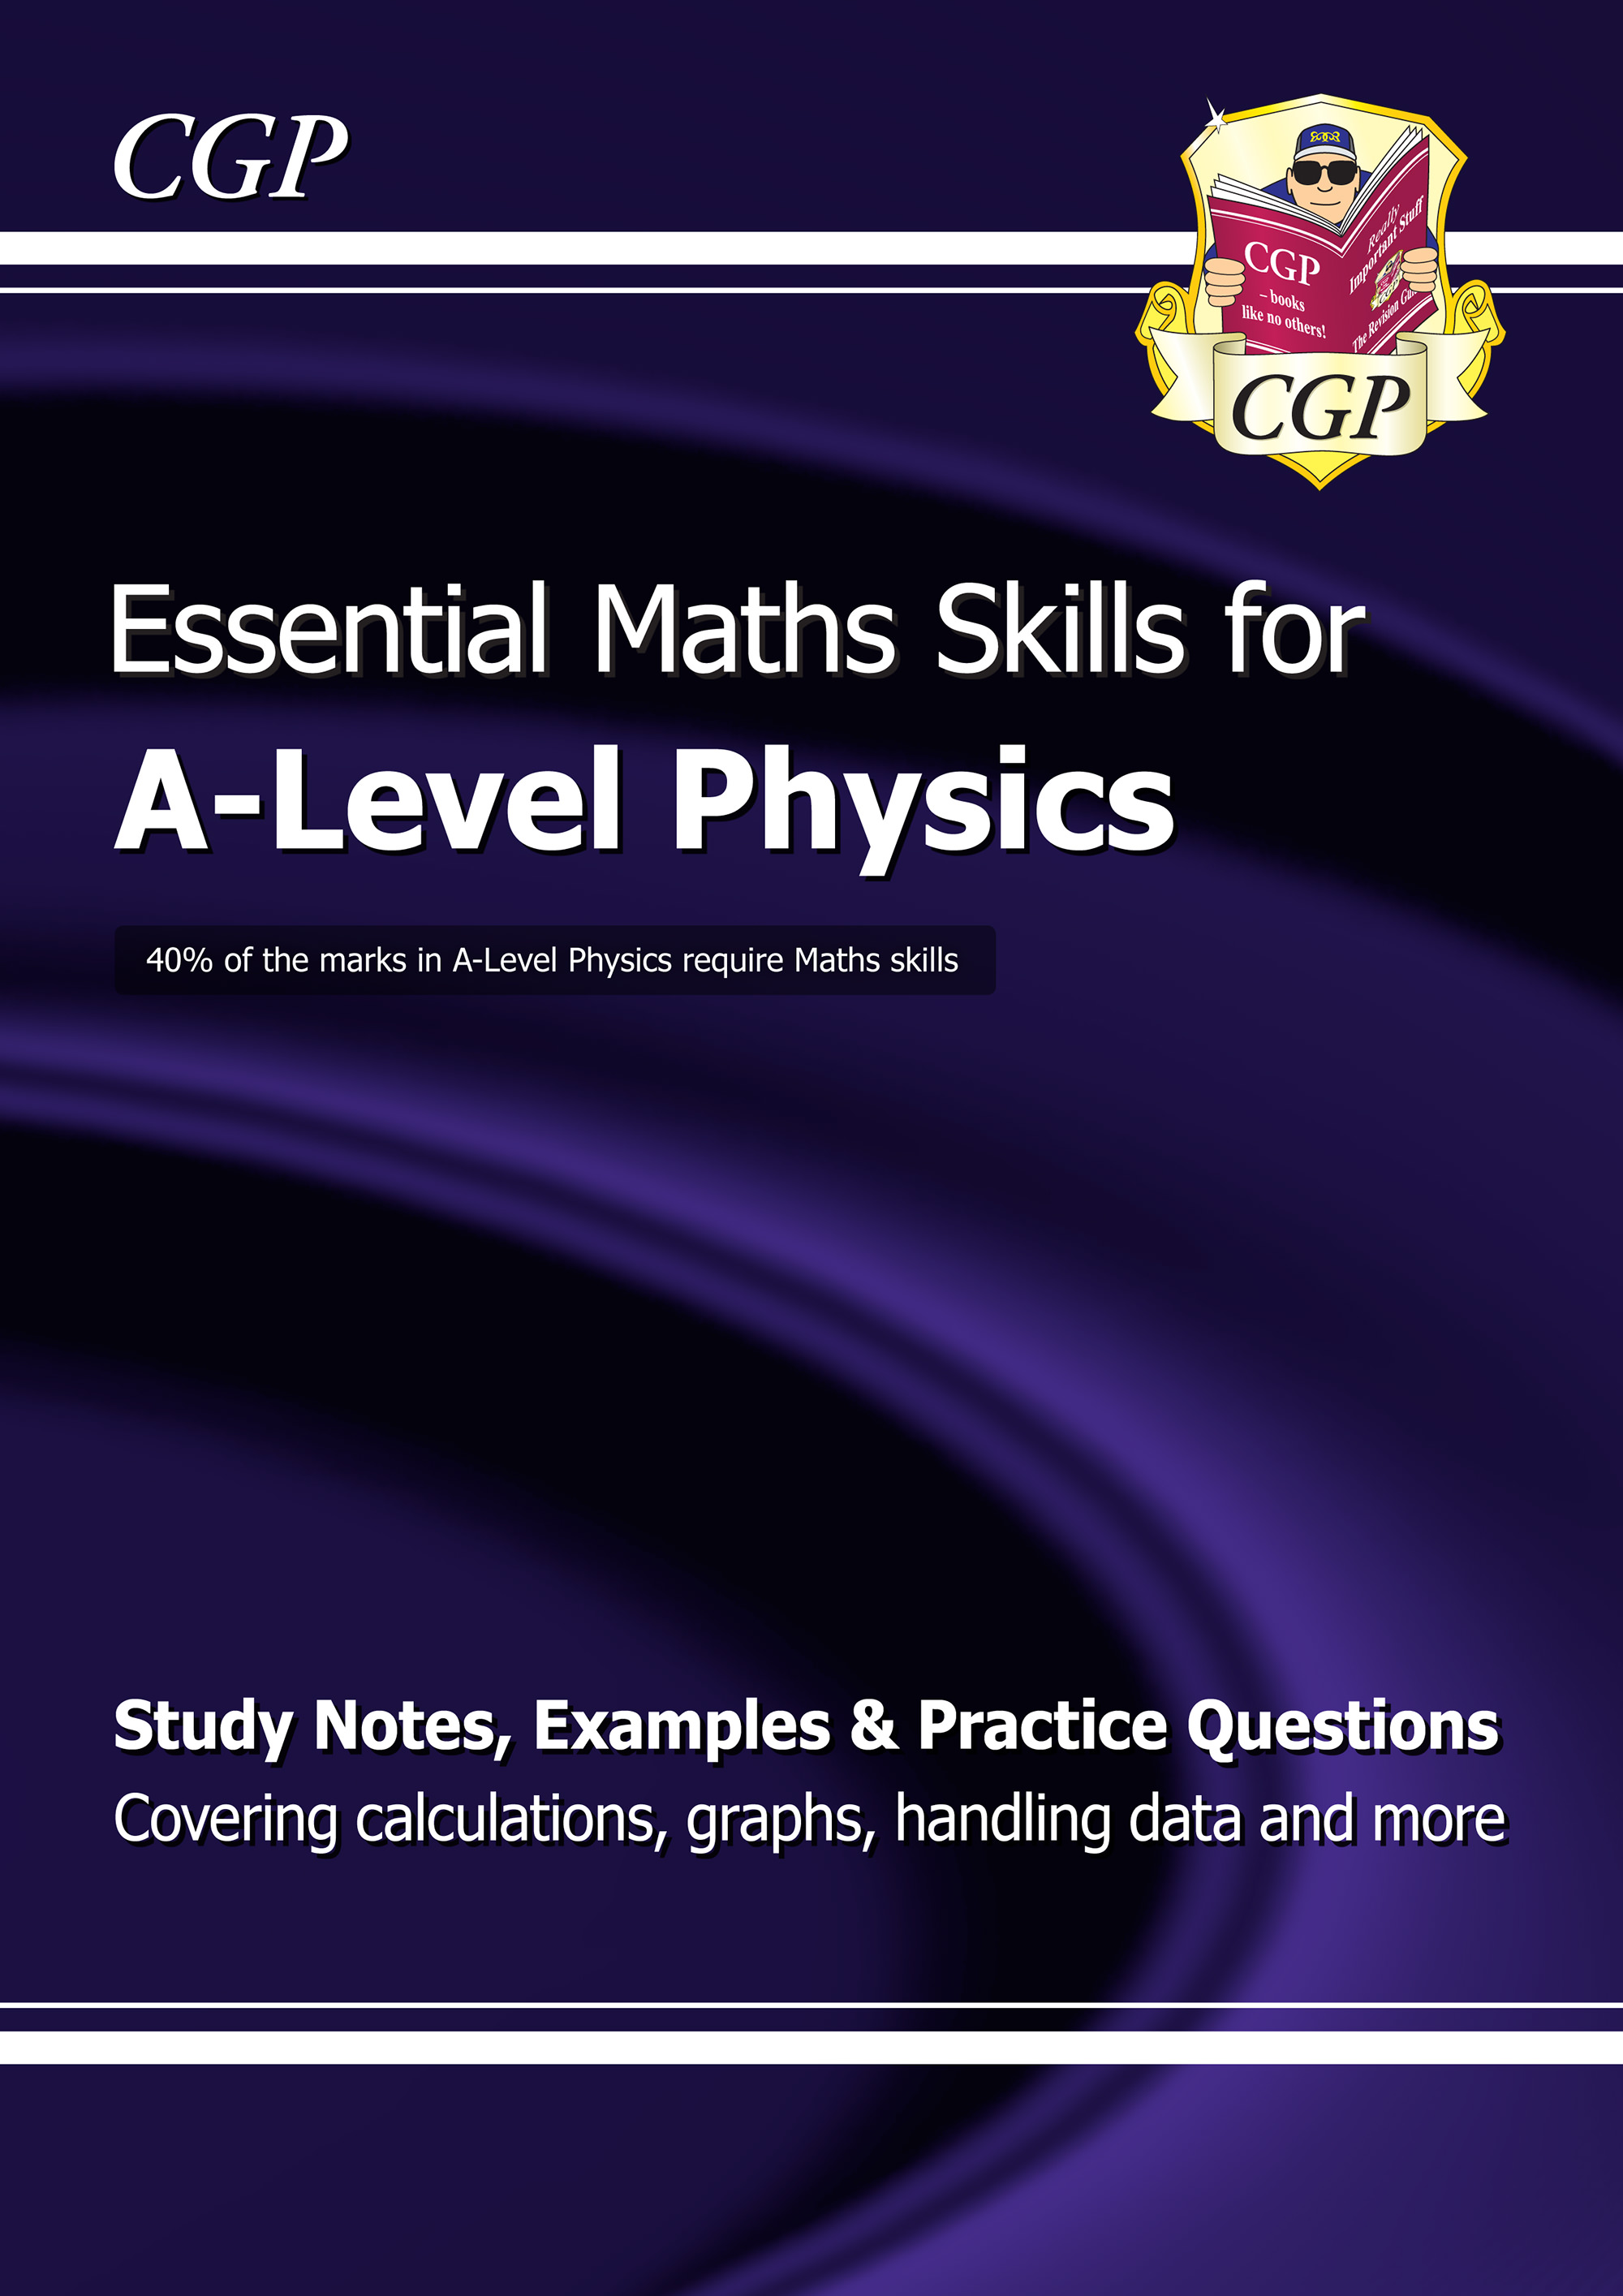 PMR71 - A-Level Physics: Essential Maths Skills